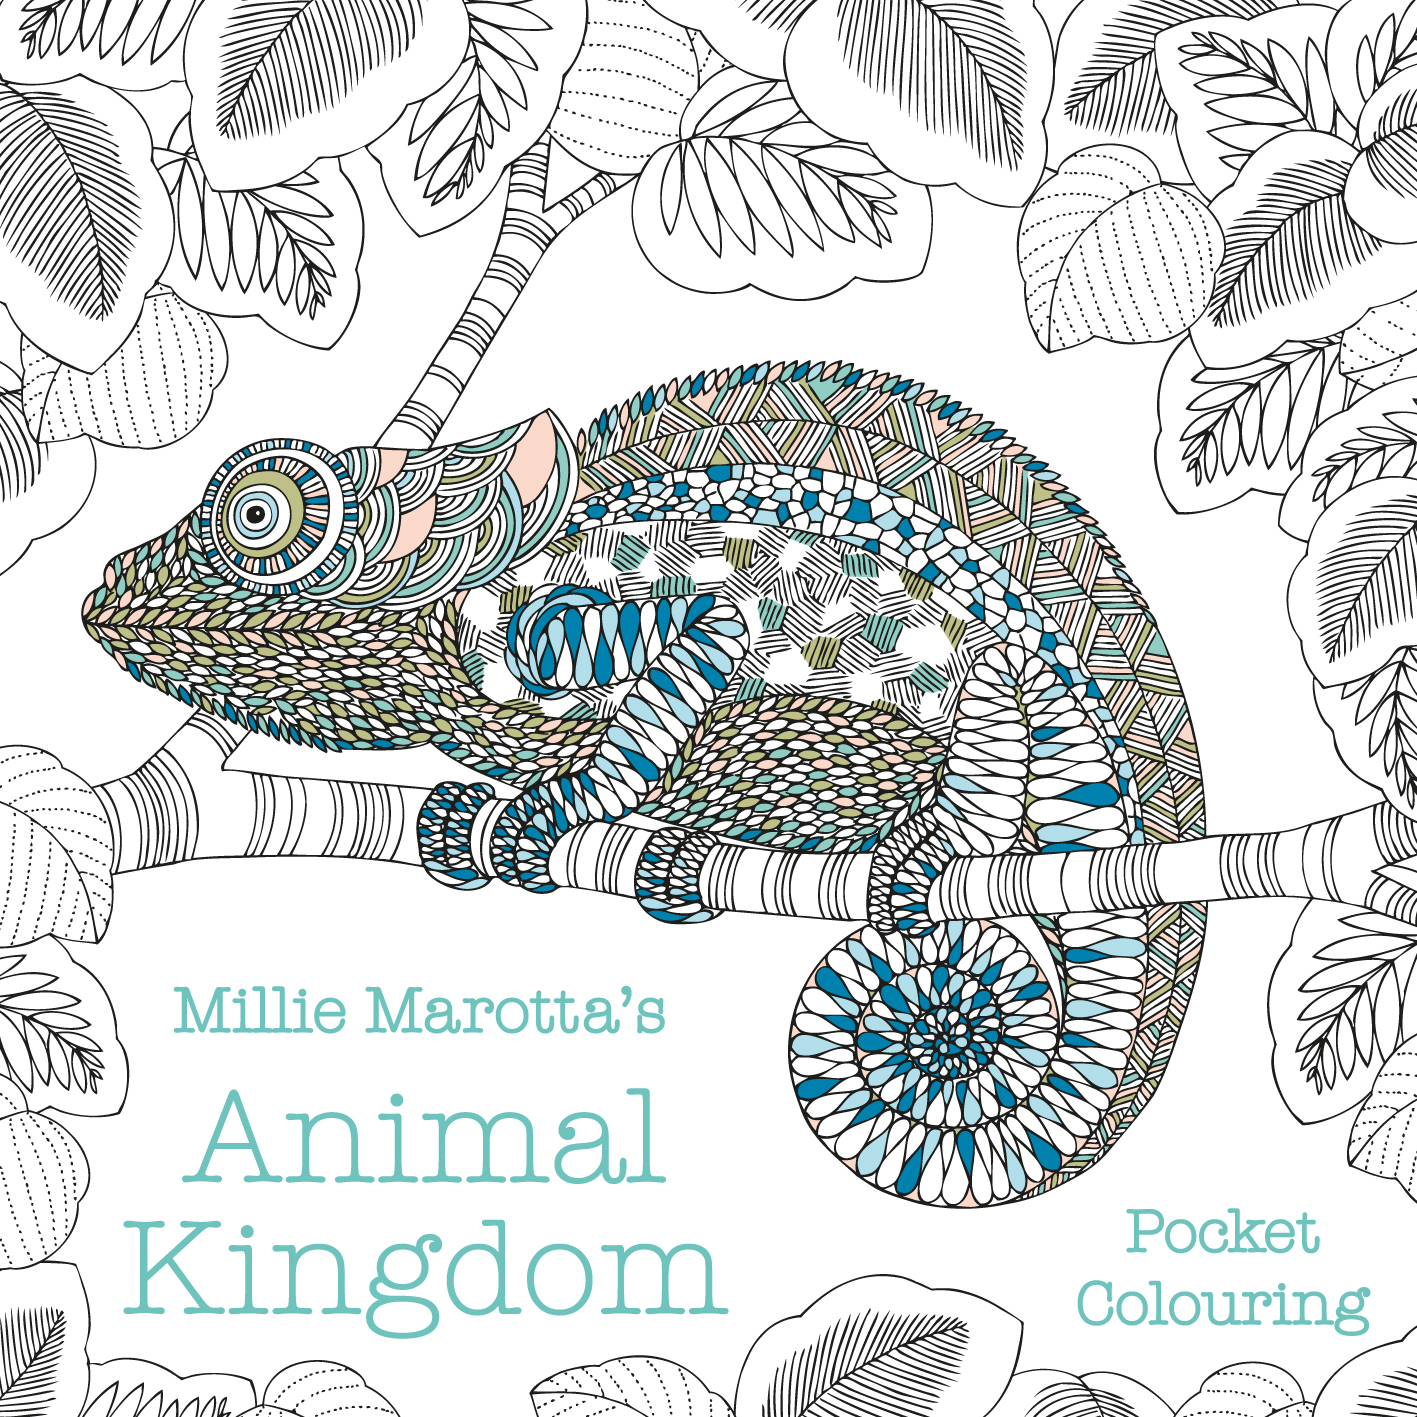 Millie Marotta's Animal Kingdom Pocket Colouring